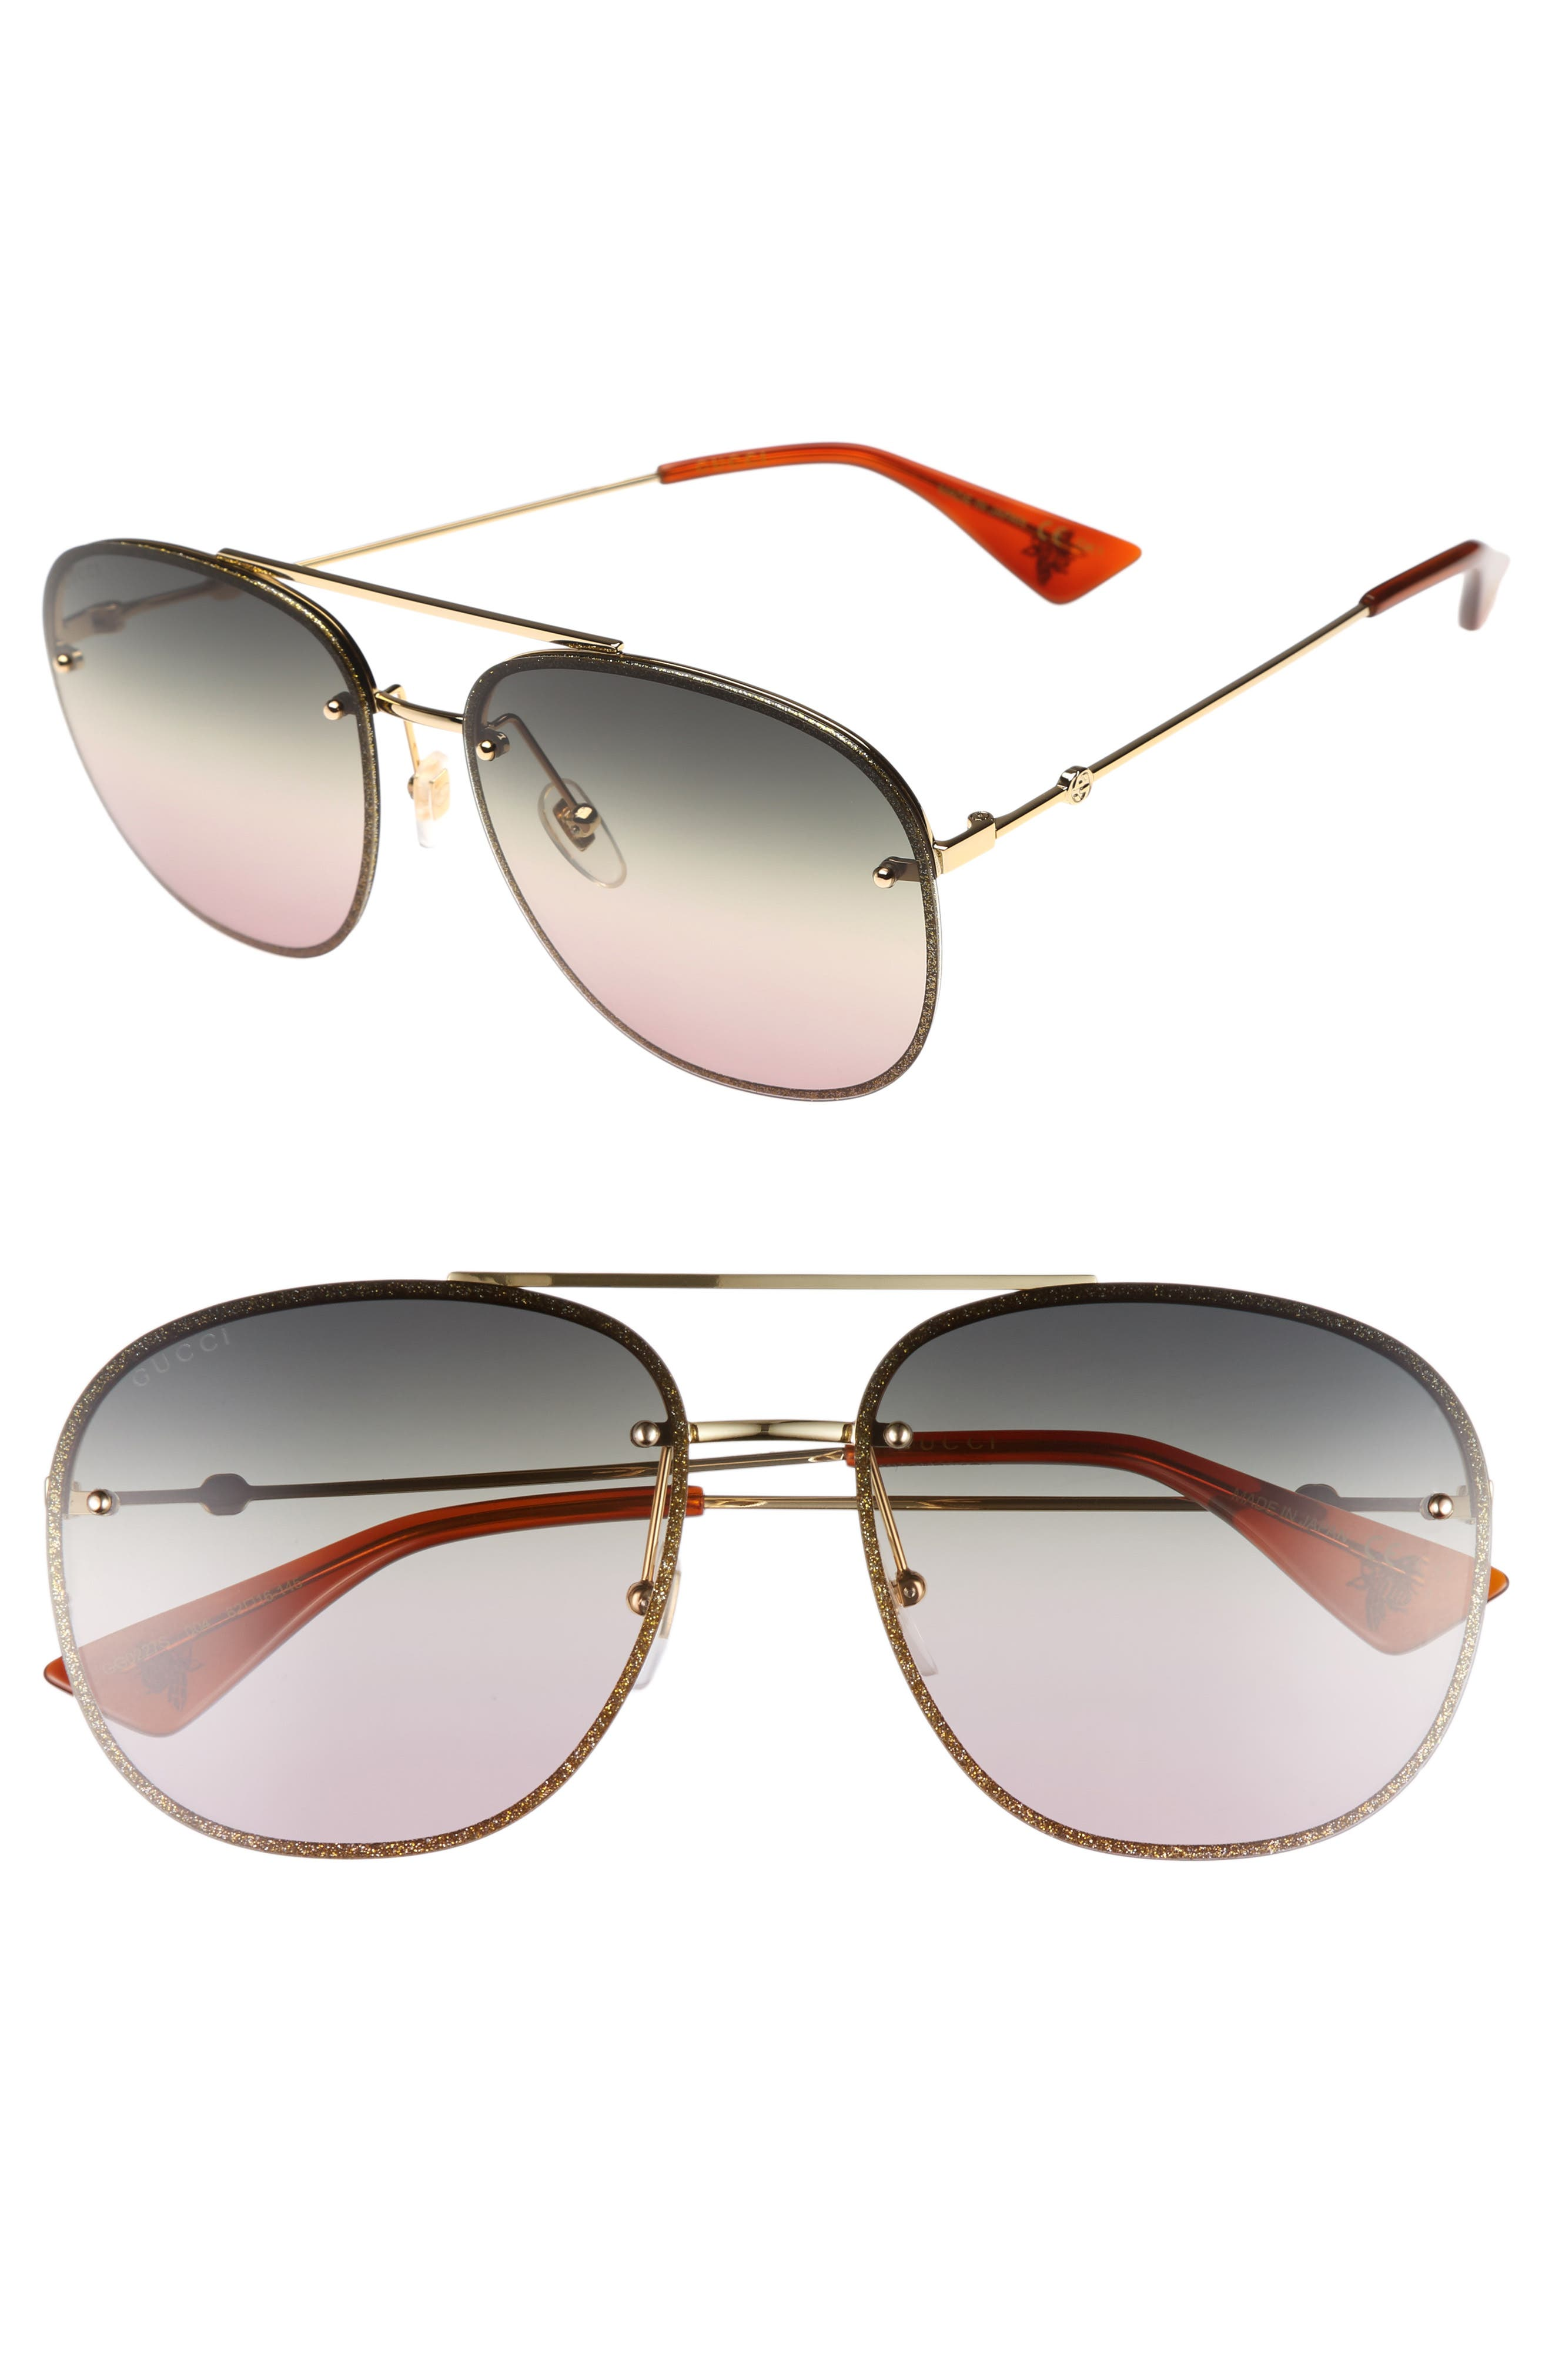 62mm Oversize Aviator Sunglasses,                         Main,                         color, GOLD/ GREEN/ YELLOW/ NUDE